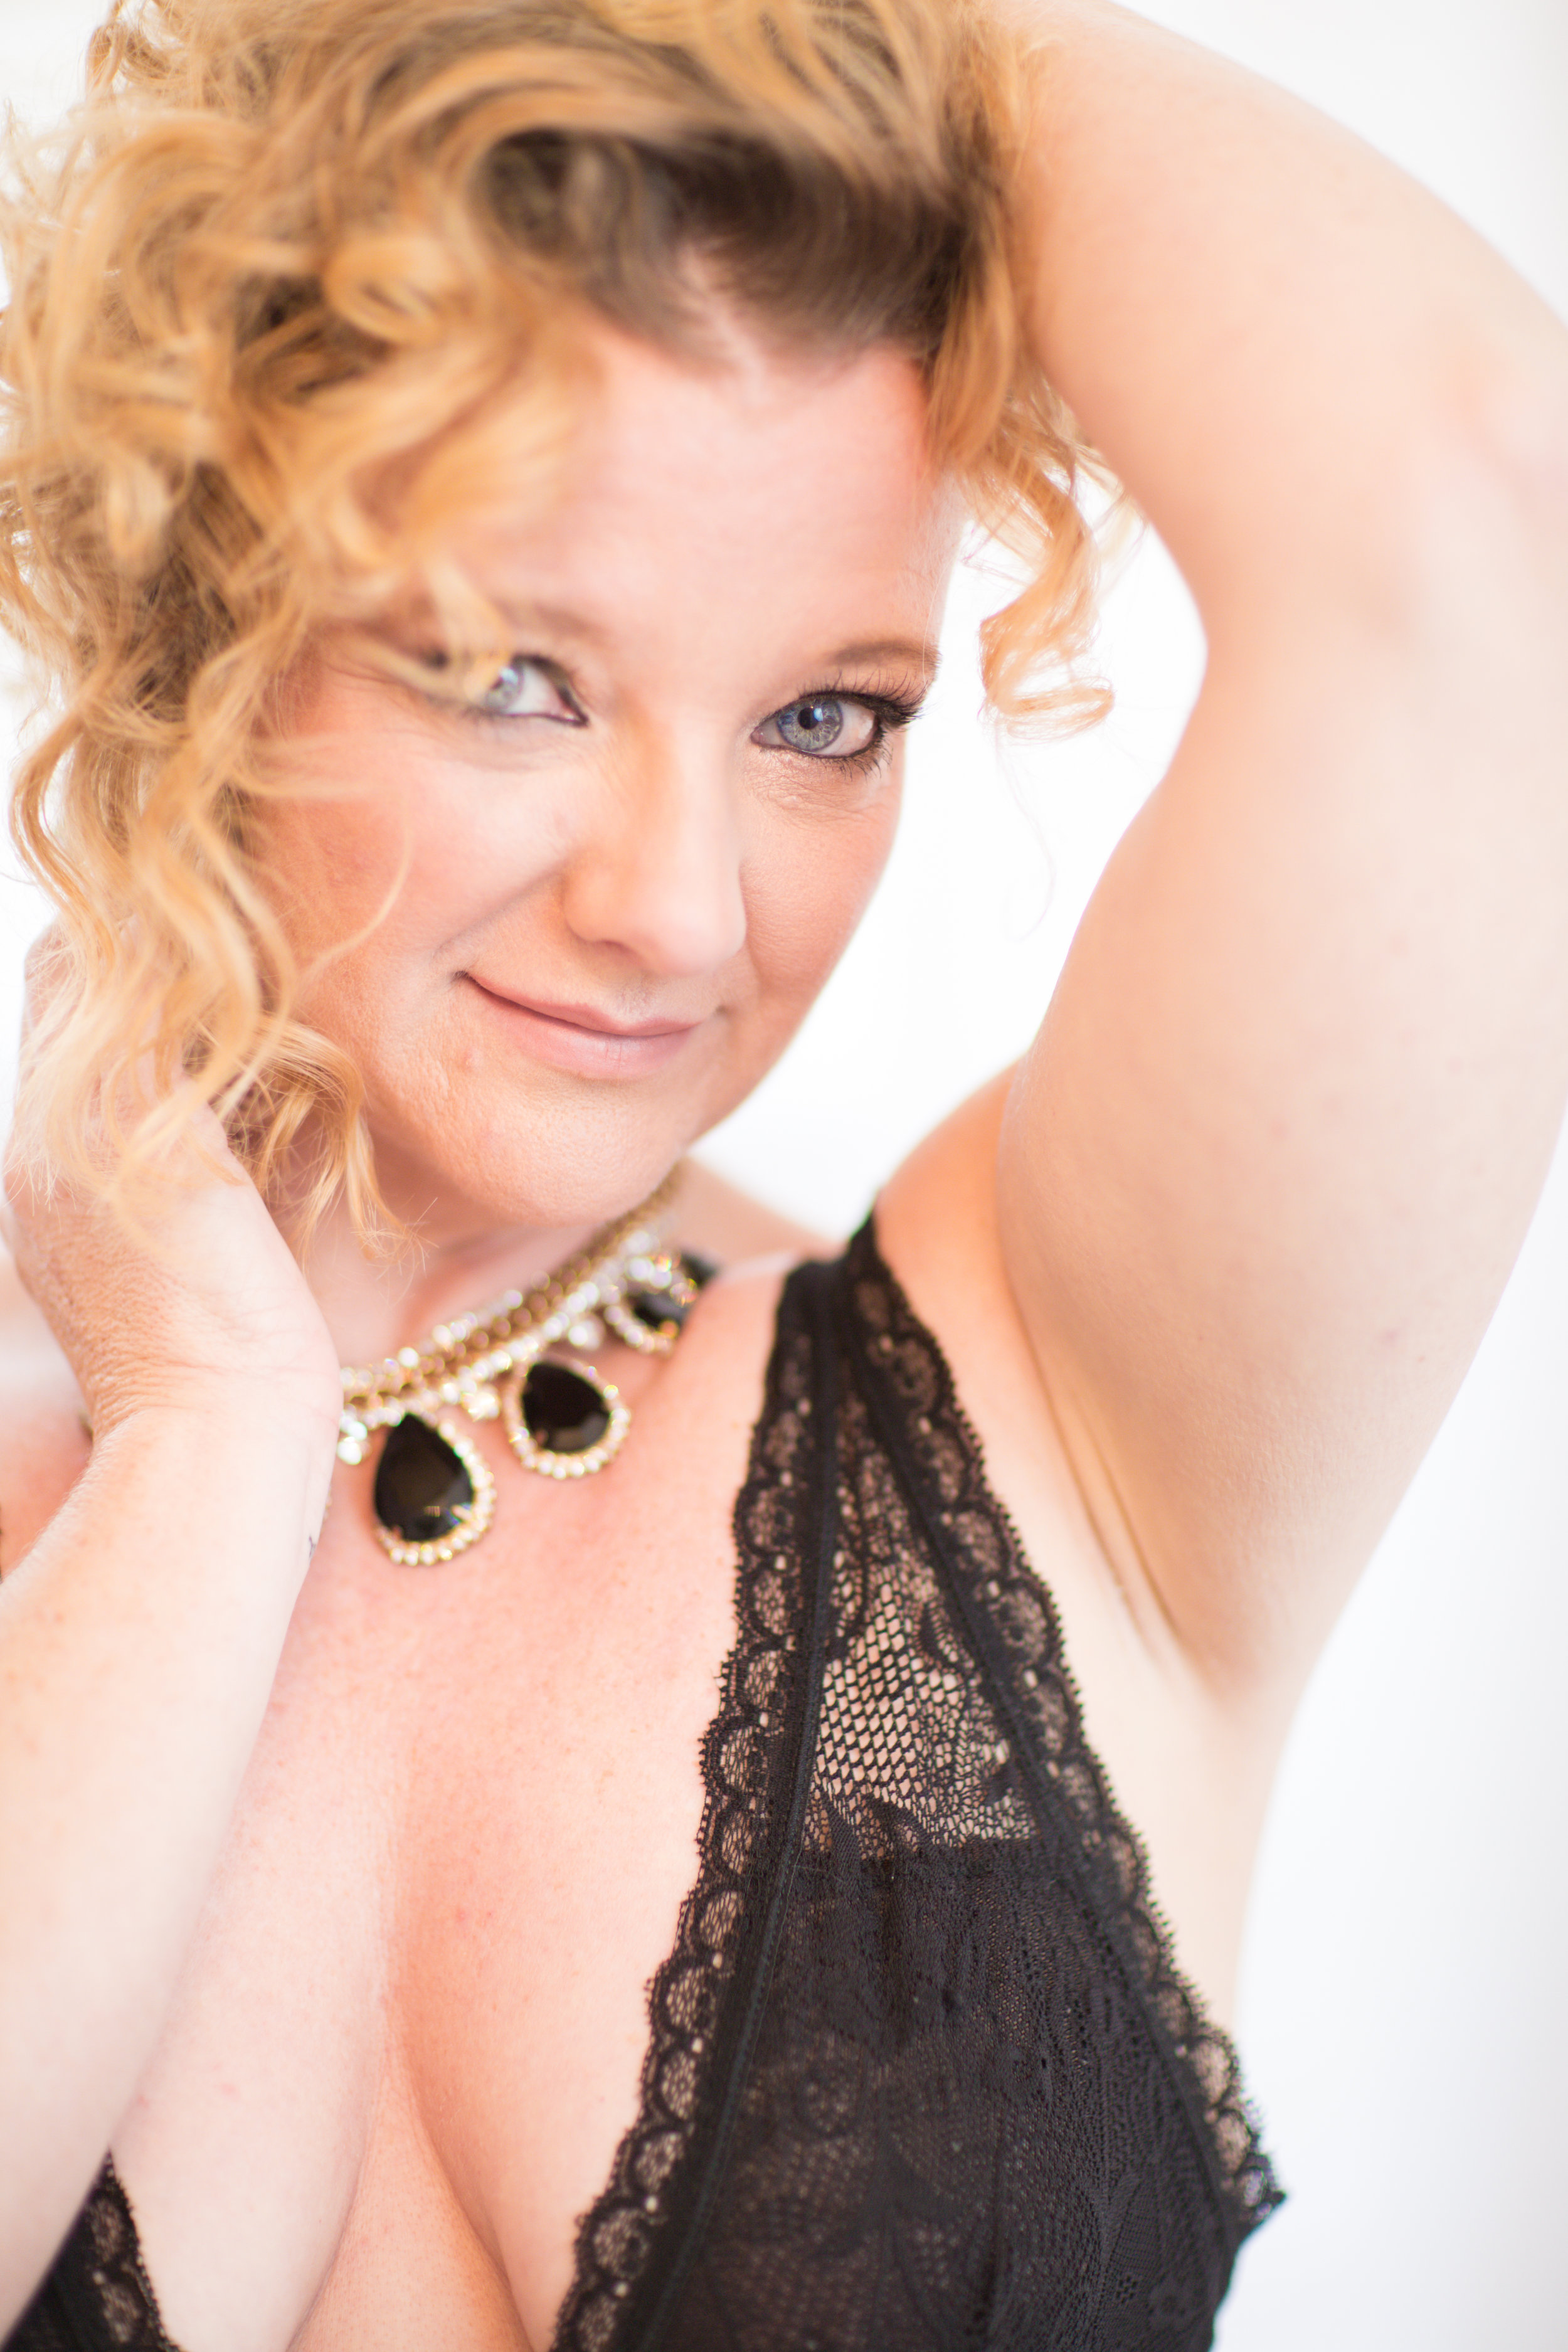 Body Positive Boudoir - Raleigh, Durham - International Women's Day00006.jpg